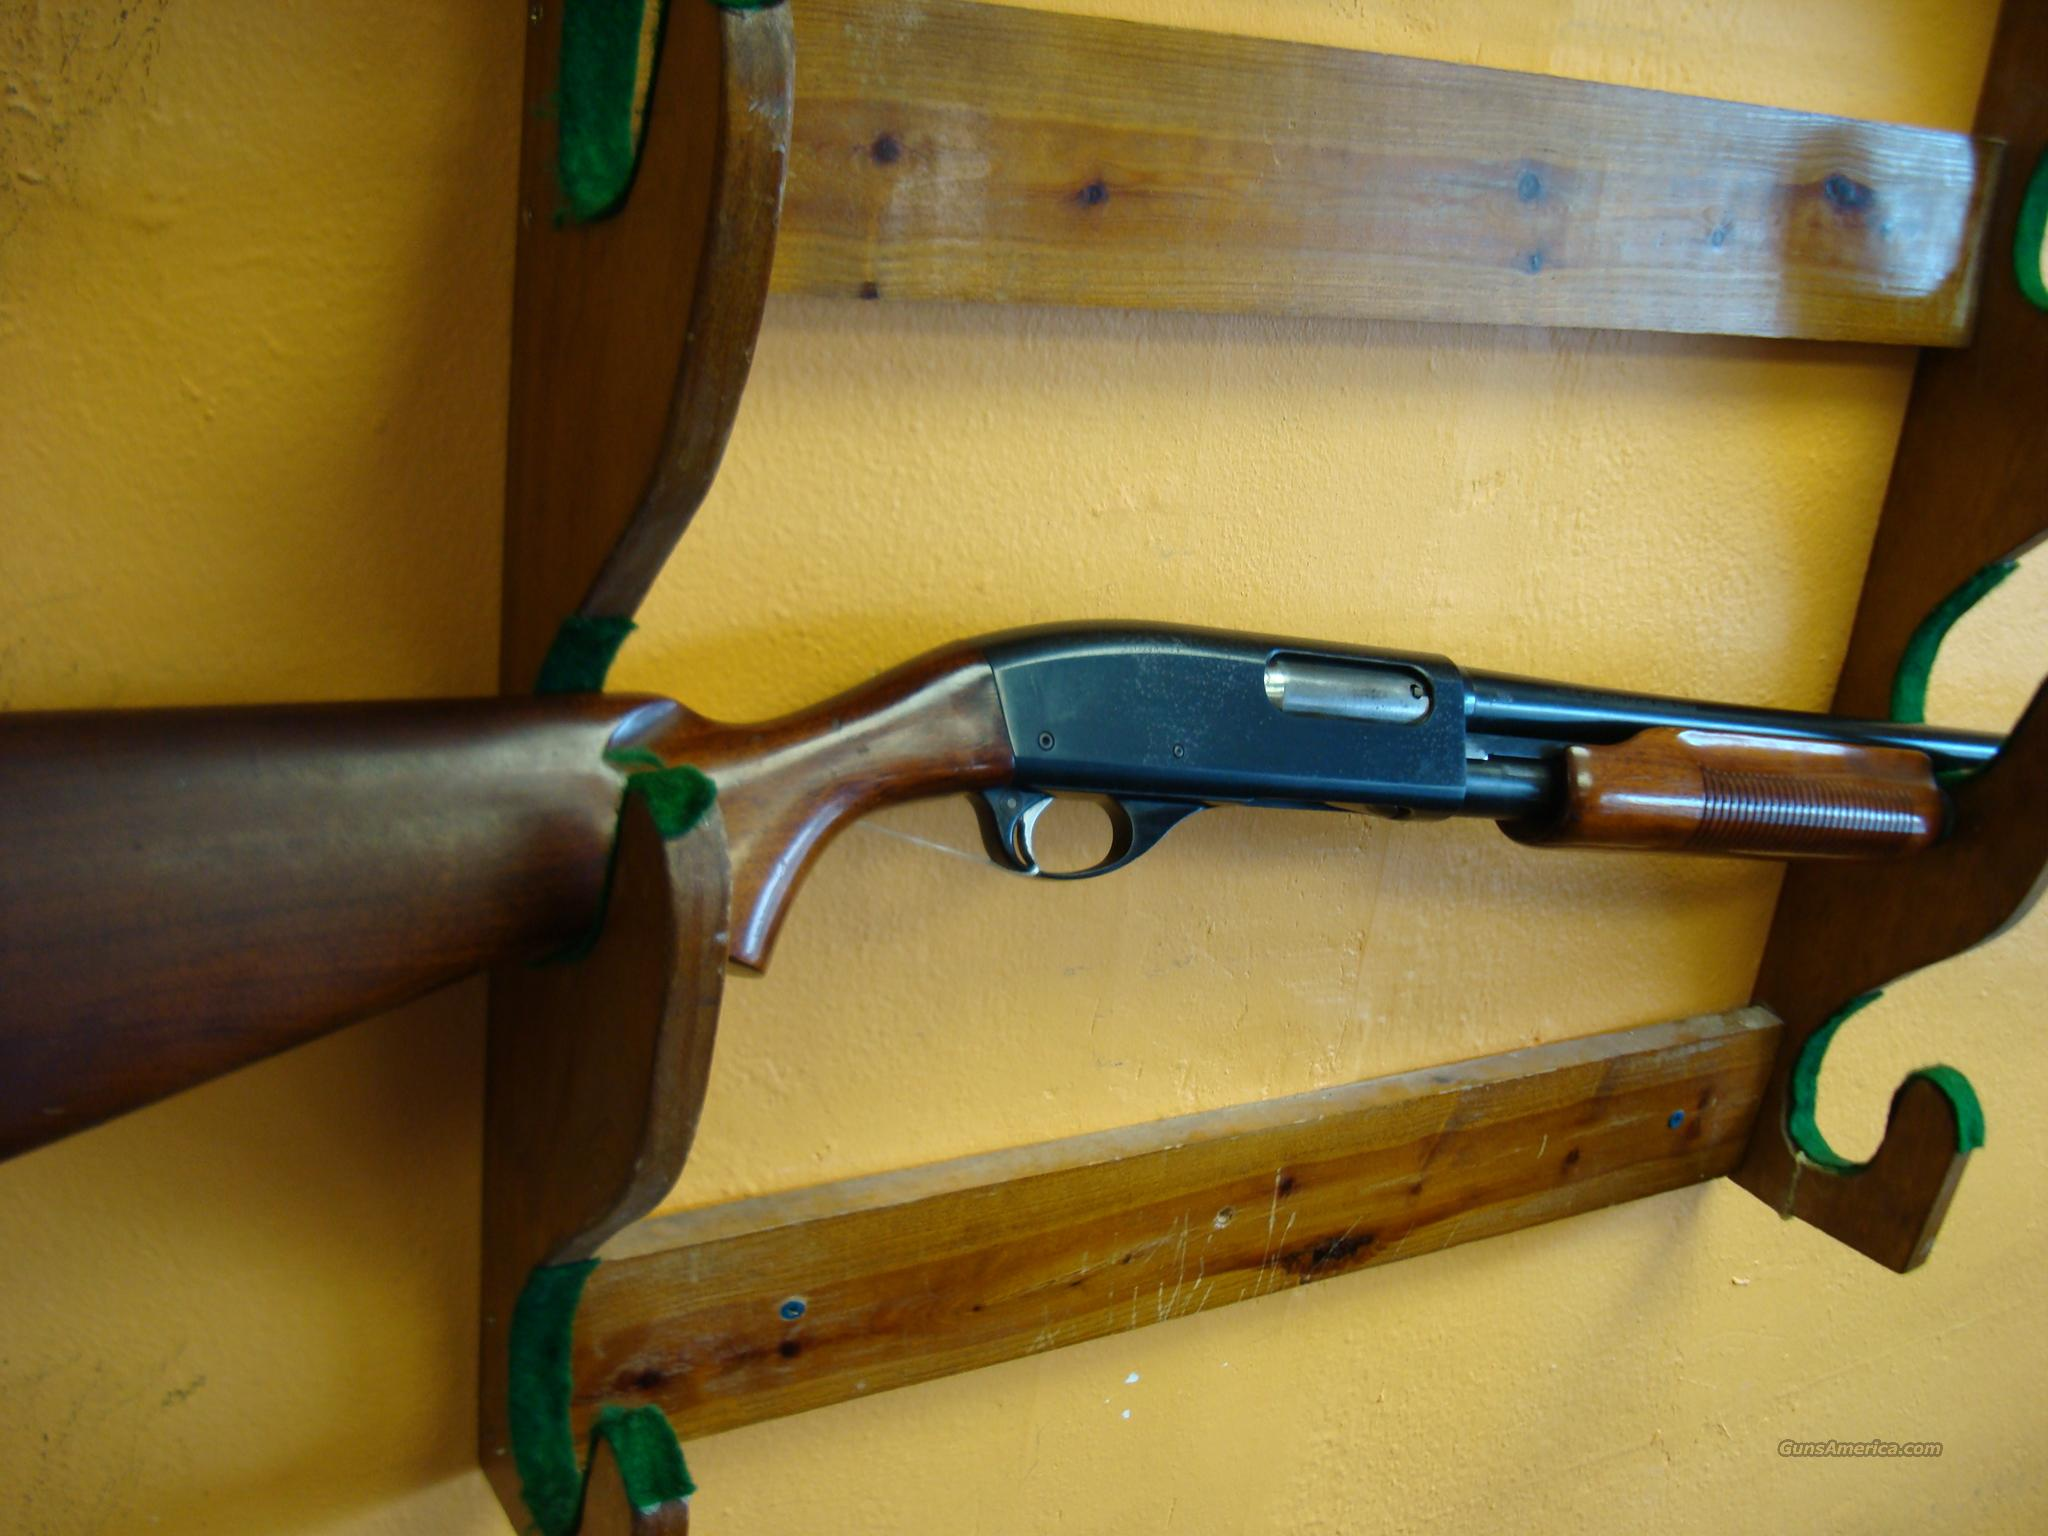 REMINGTON 870 WINGMASTER 16GA SHOTGUN  Guns > Shotguns > Remington Shotguns  > Pump > Hunting